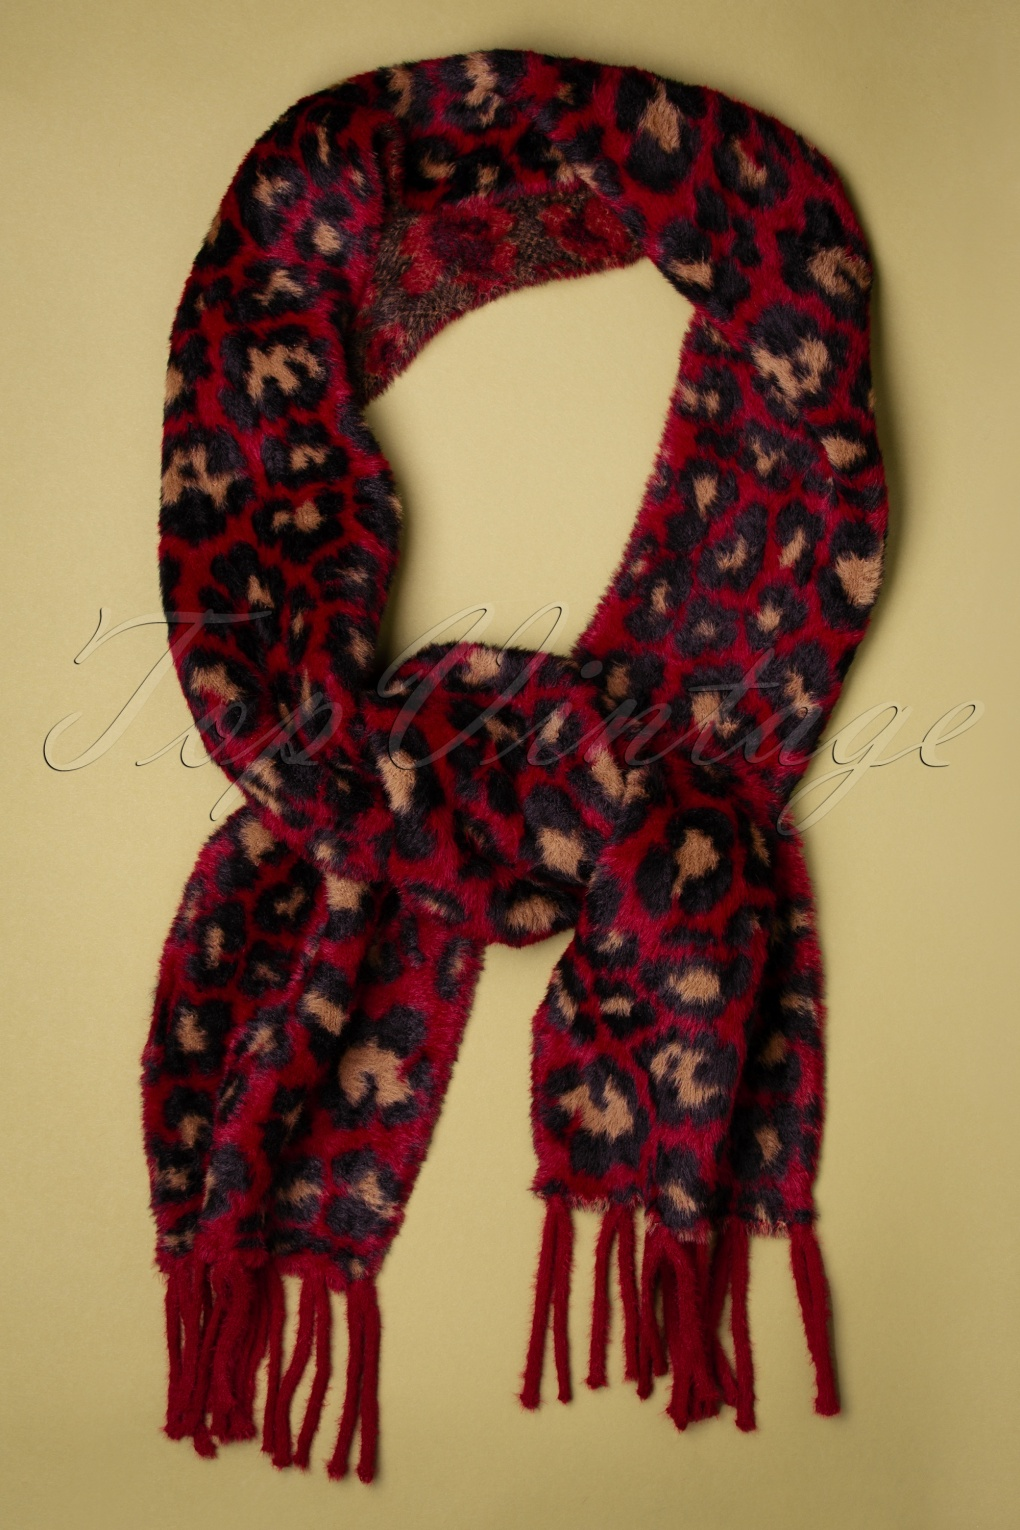 50s Hair Bandanna, Headband, Scarf, Flowers | 1950s Wigs 50s Verity Leopard Scarf in Red £30.01 AT vintagedancer.com